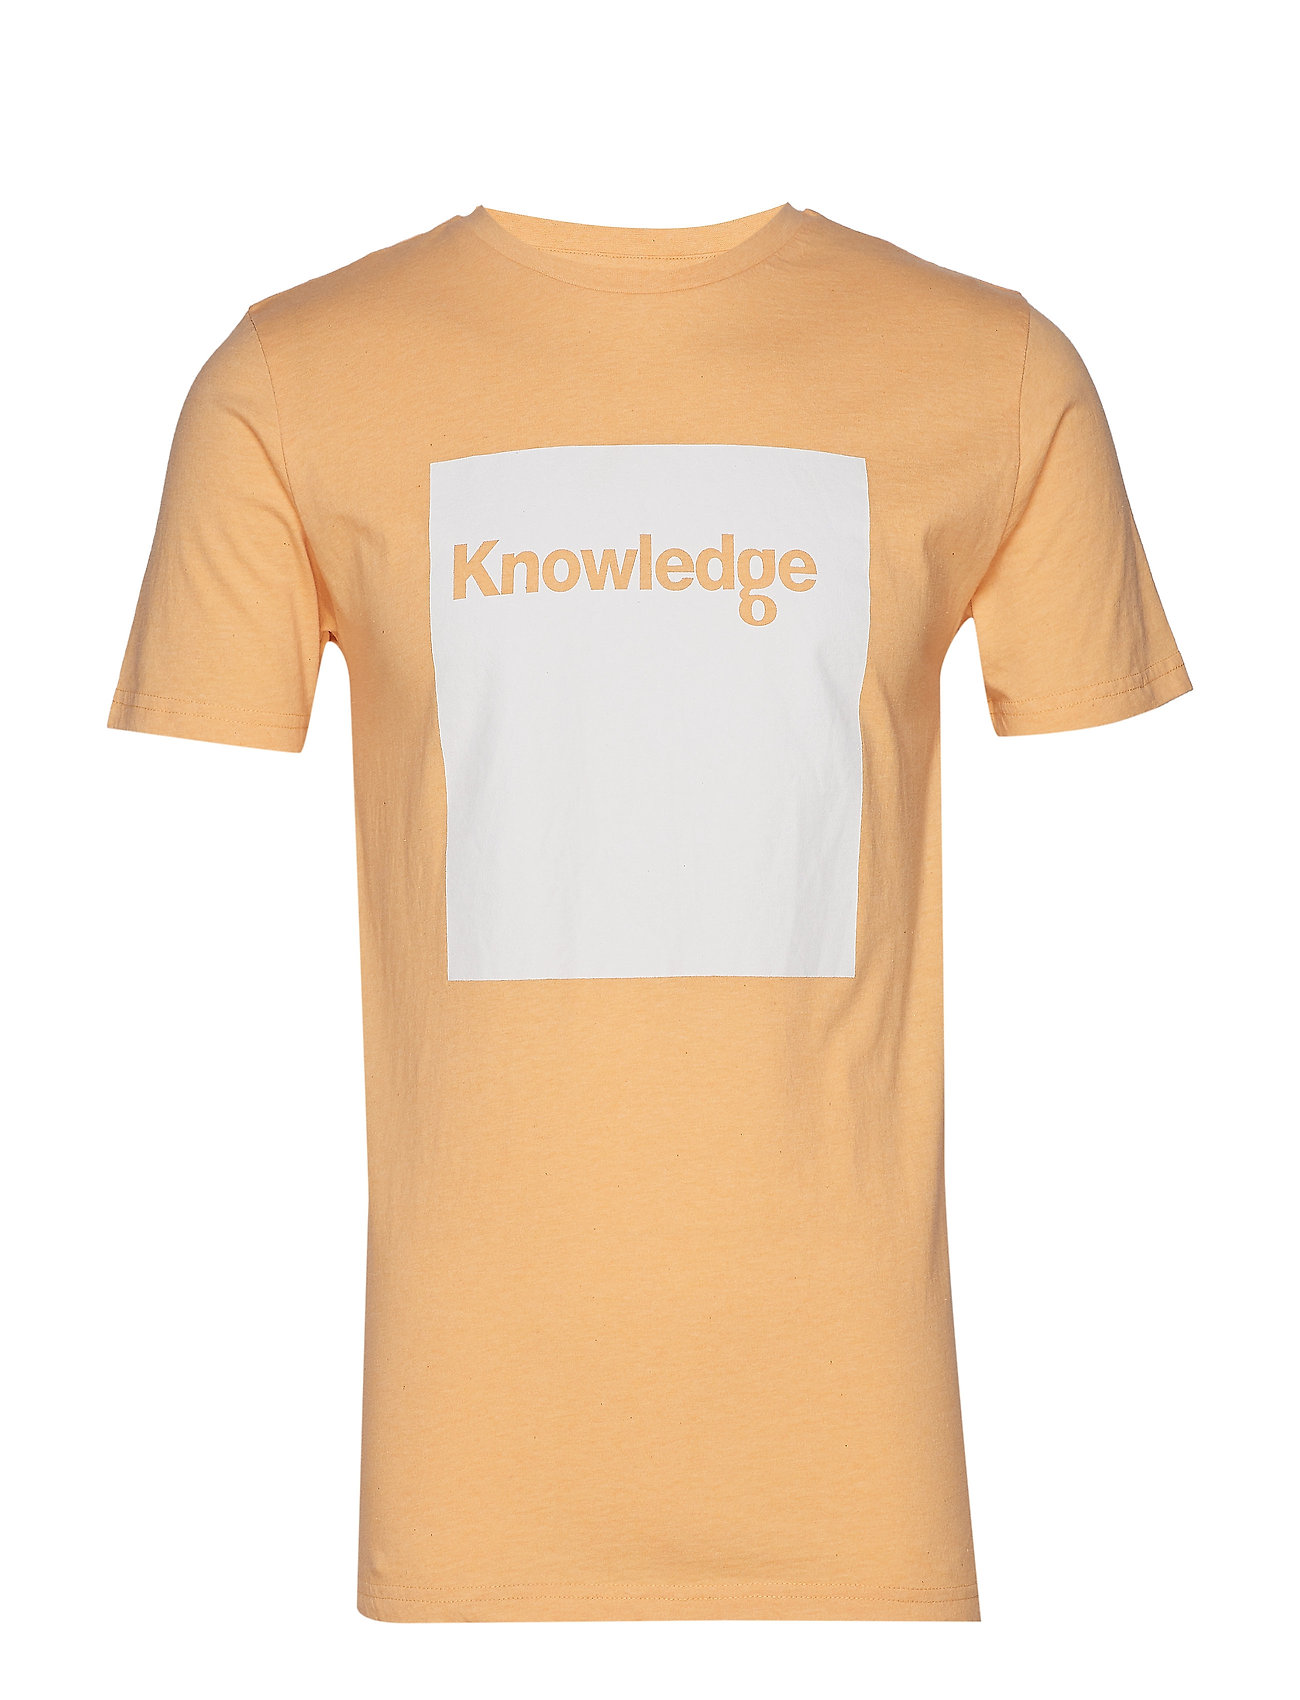 Image of T-Shirt With Square Logo - Gots T-shirt Knowledge Cotton Apparel (3169766275)